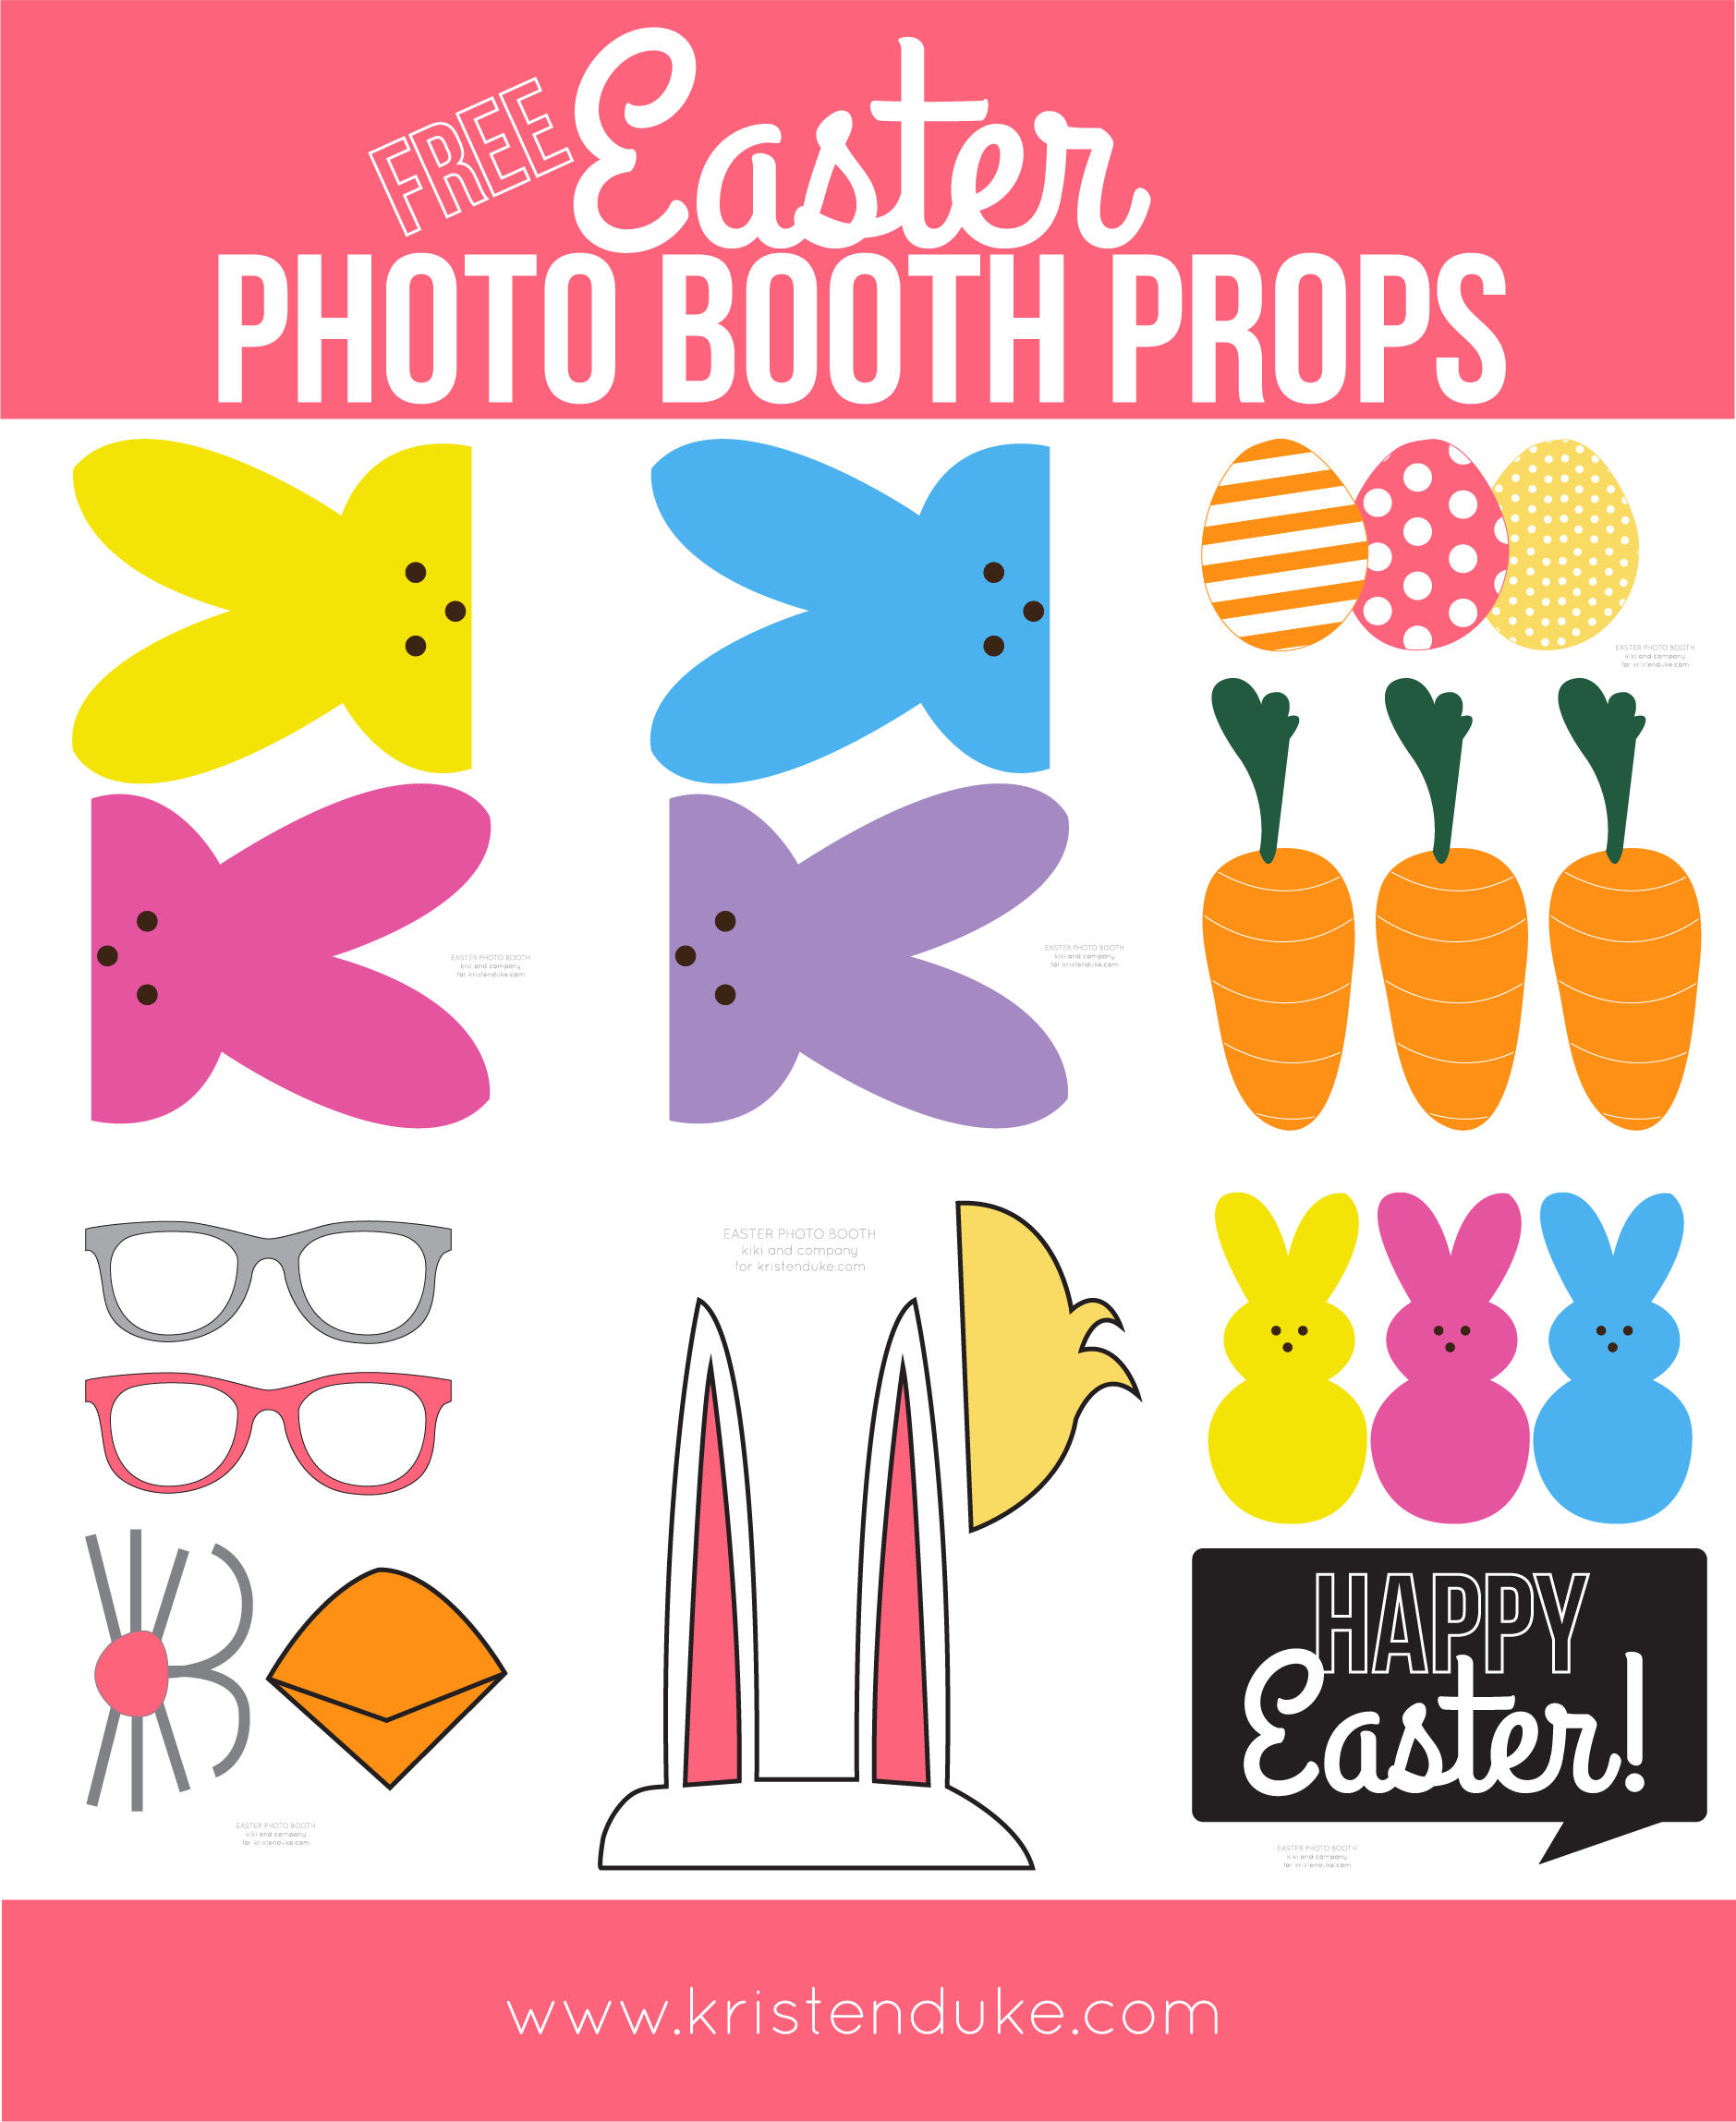 picture regarding Easter Printable identified as Easter Photograph Booth Props versus Taking pictures Contentment with Kristen Duke